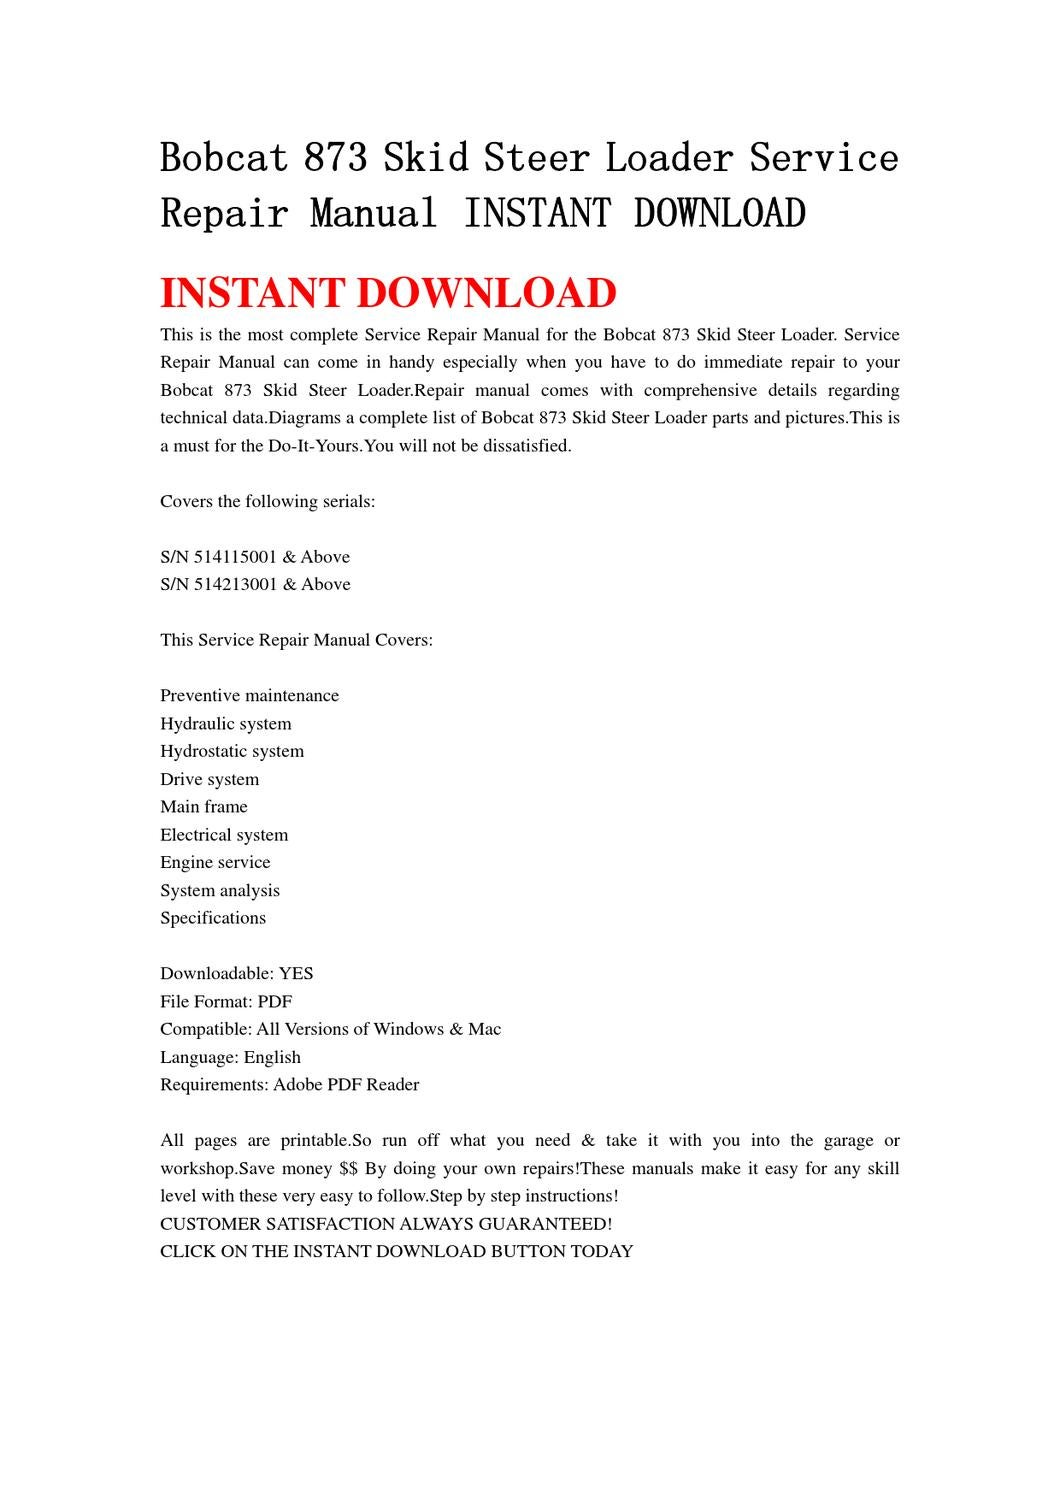 hight resolution of bobcat 873 skid steer loader service repair manual instant download by chen wei issuu